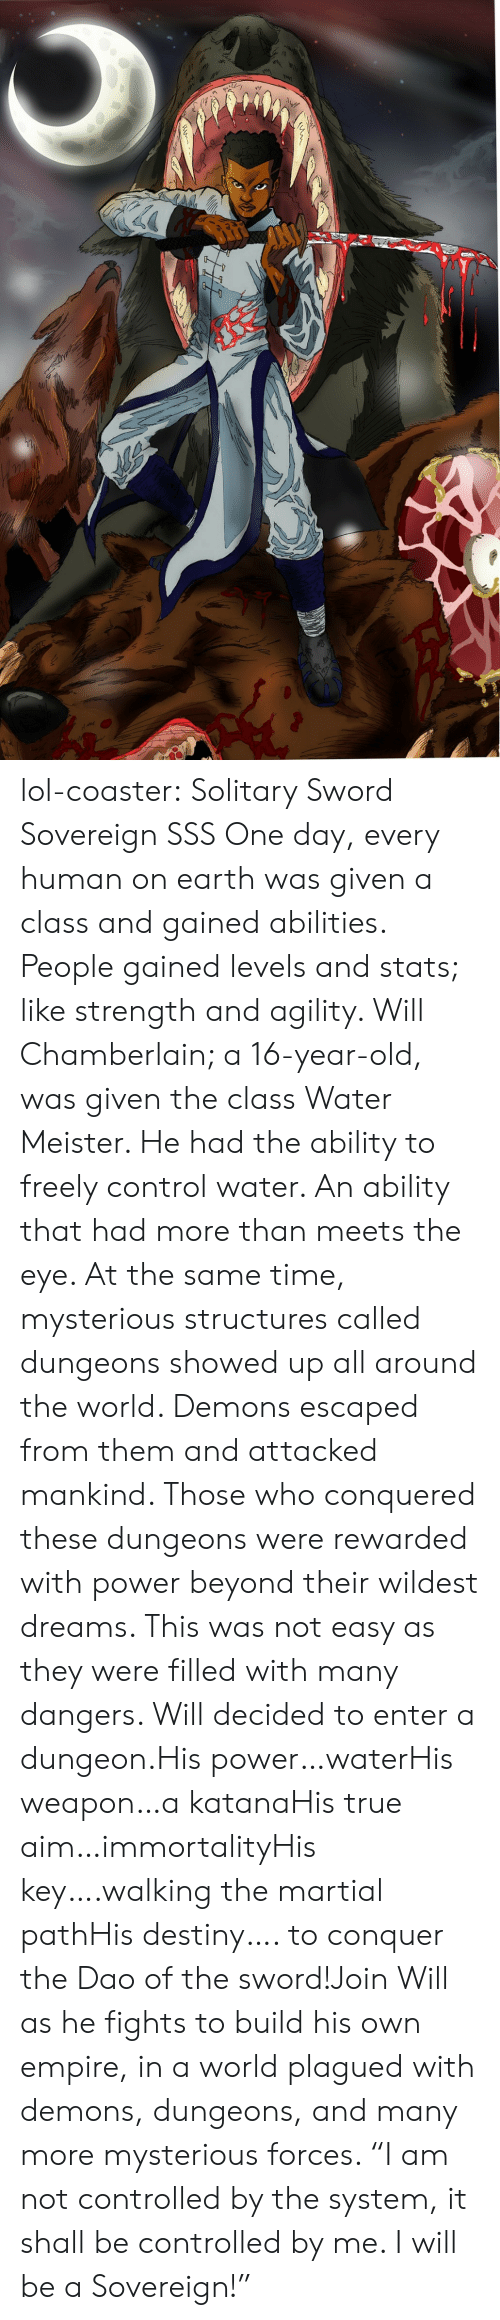 "Was Given: lol-coaster: Solitary Sword Sovereign SSS   One day, every human on earth was given a class and gained abilities. People gained levels and stats; like strength and agility. Will Chamberlain; a 16-year-old, was given the class Water Meister. He had the ability to freely control water. An ability that had more than meets the eye. At the same time, mysterious structures called dungeons showed up all around the world. Demons escaped from them and attacked mankind. Those who conquered these dungeons were rewarded with power beyond their wildest dreams. This was not easy as they were filled with many dangers. Will decided to enter a dungeon.His power…waterHis weapon…a katanaHis true aim…immortalityHis key….walking the martial pathHis destiny…. to conquer the Dao of the sword!Join Will as he fights to build his own empire, in a world plagued with demons, dungeons, and many more mysterious forces. ""I am not controlled by the system, it shall be controlled by me. I will be a Sovereign!"""